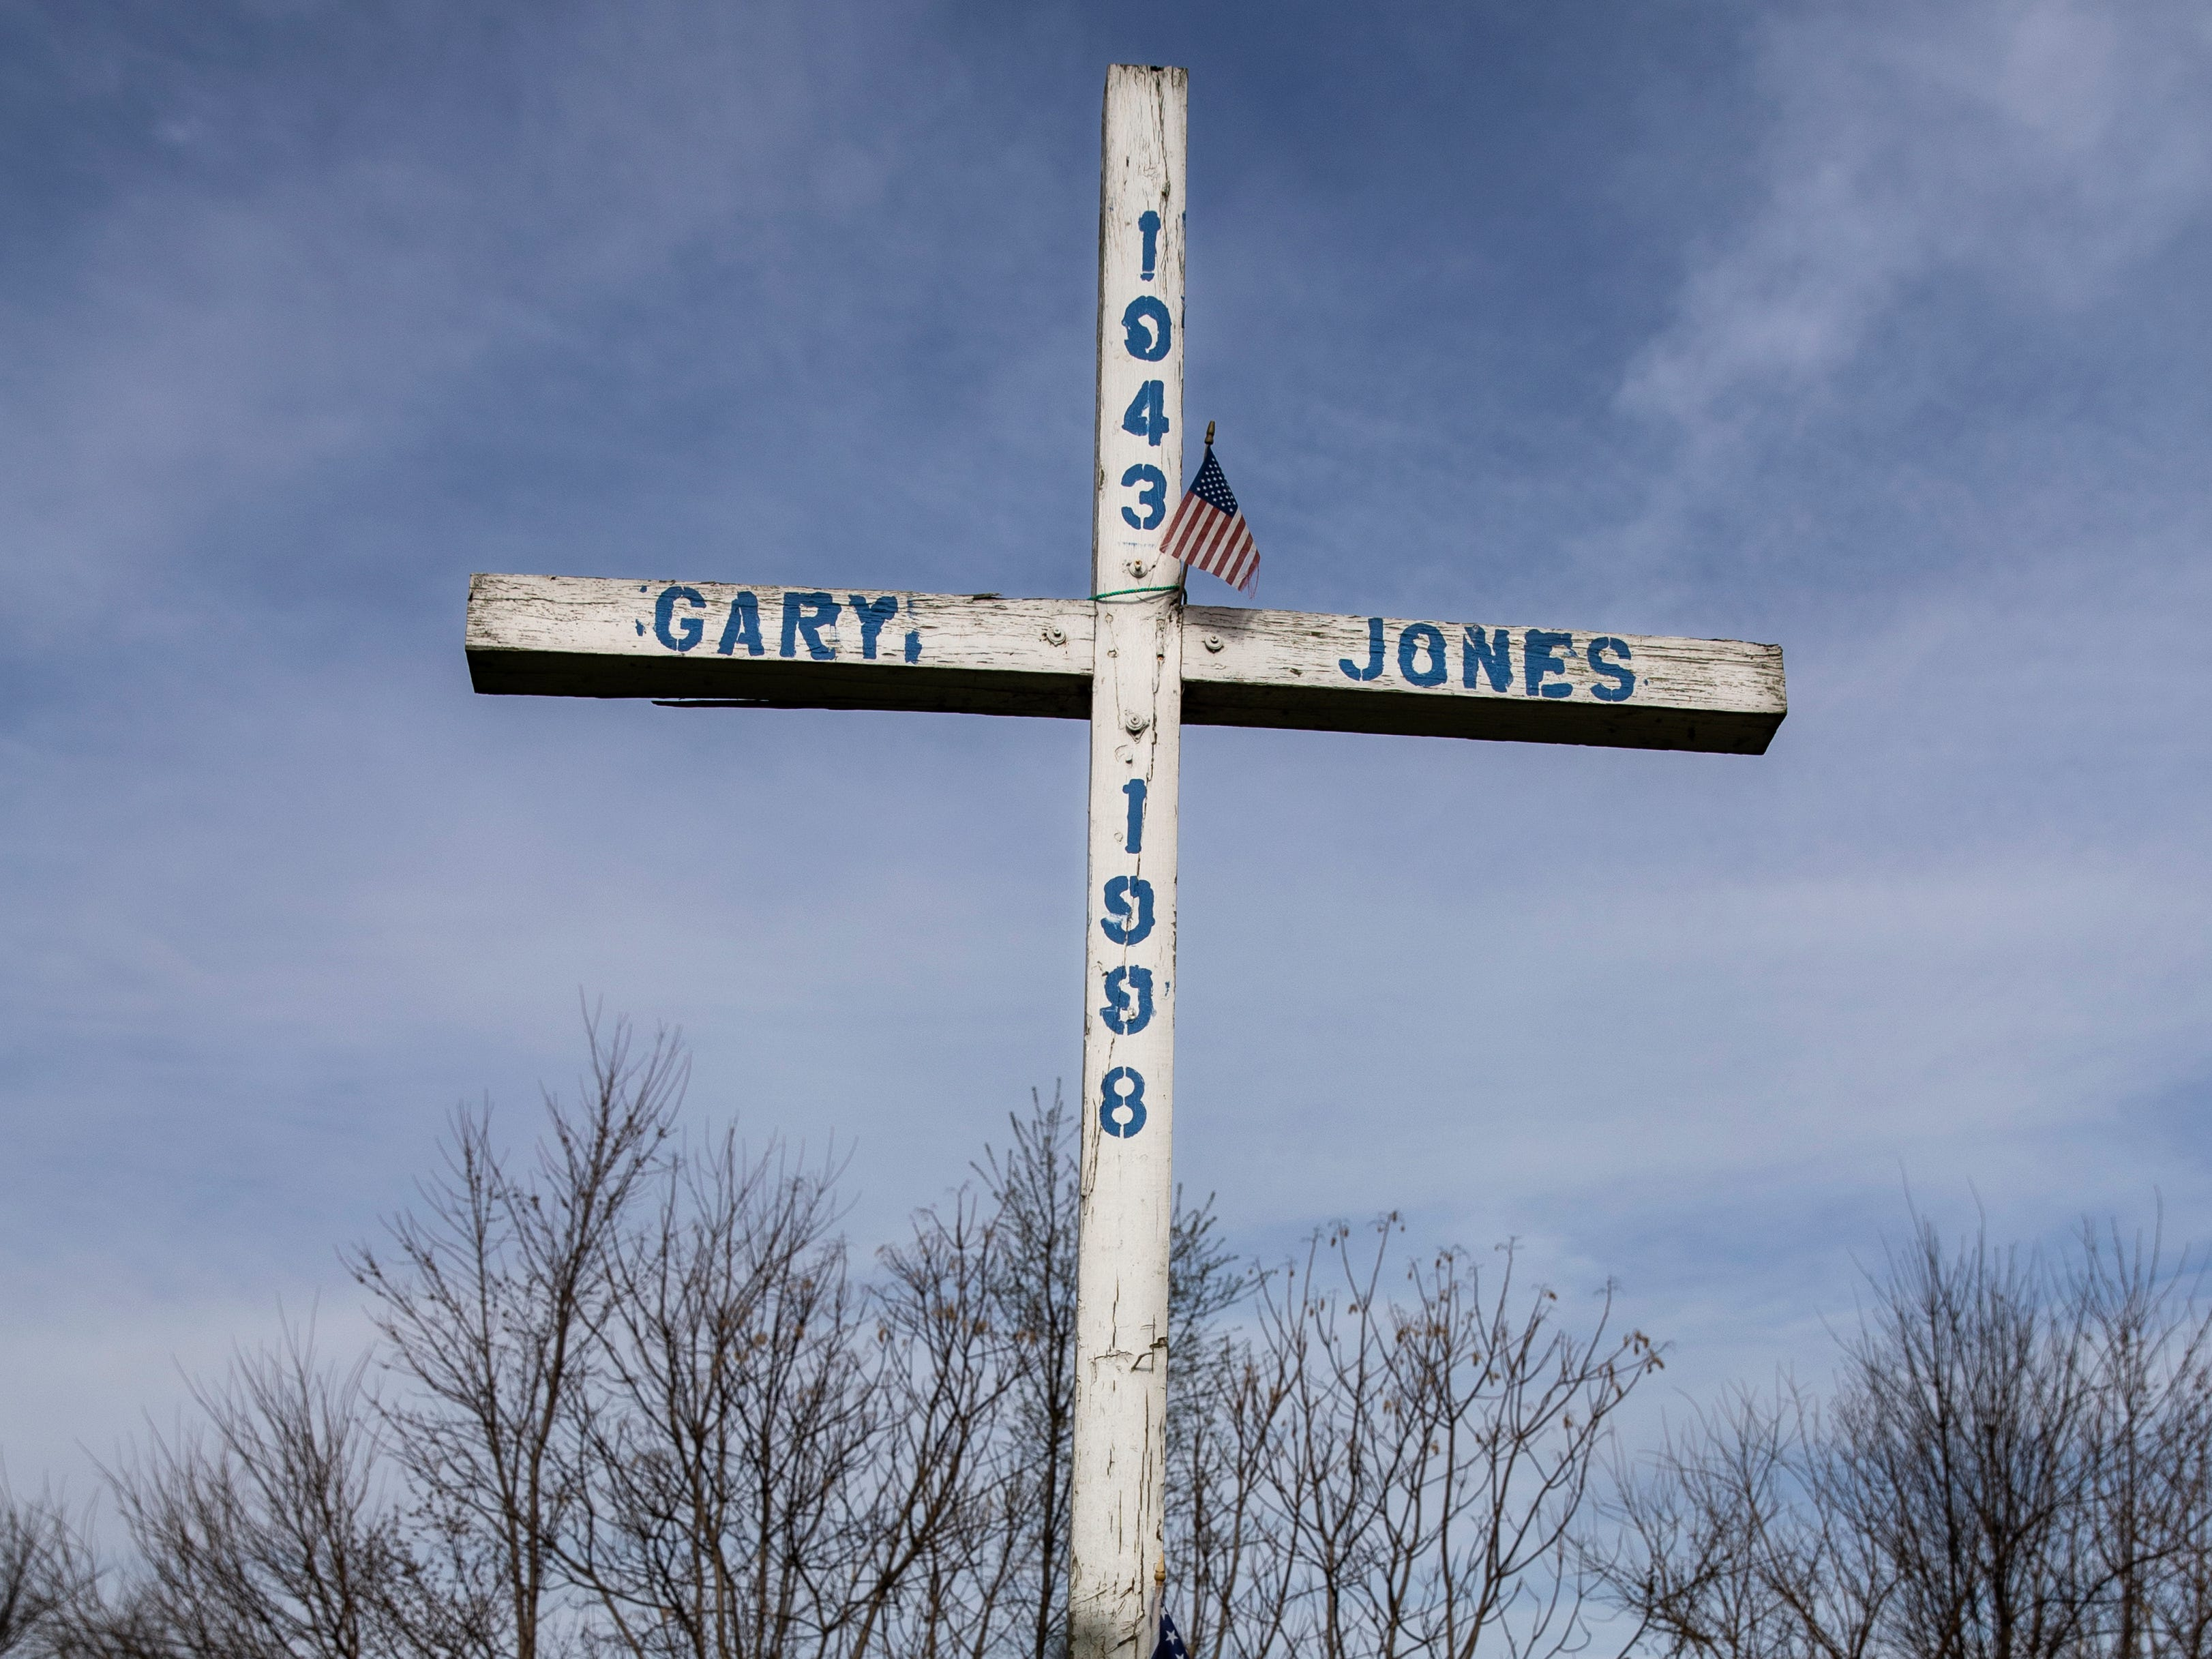 A shrine to Gary Jones who died in 1998 on 29th Street near Garfield. April 2, 2019.